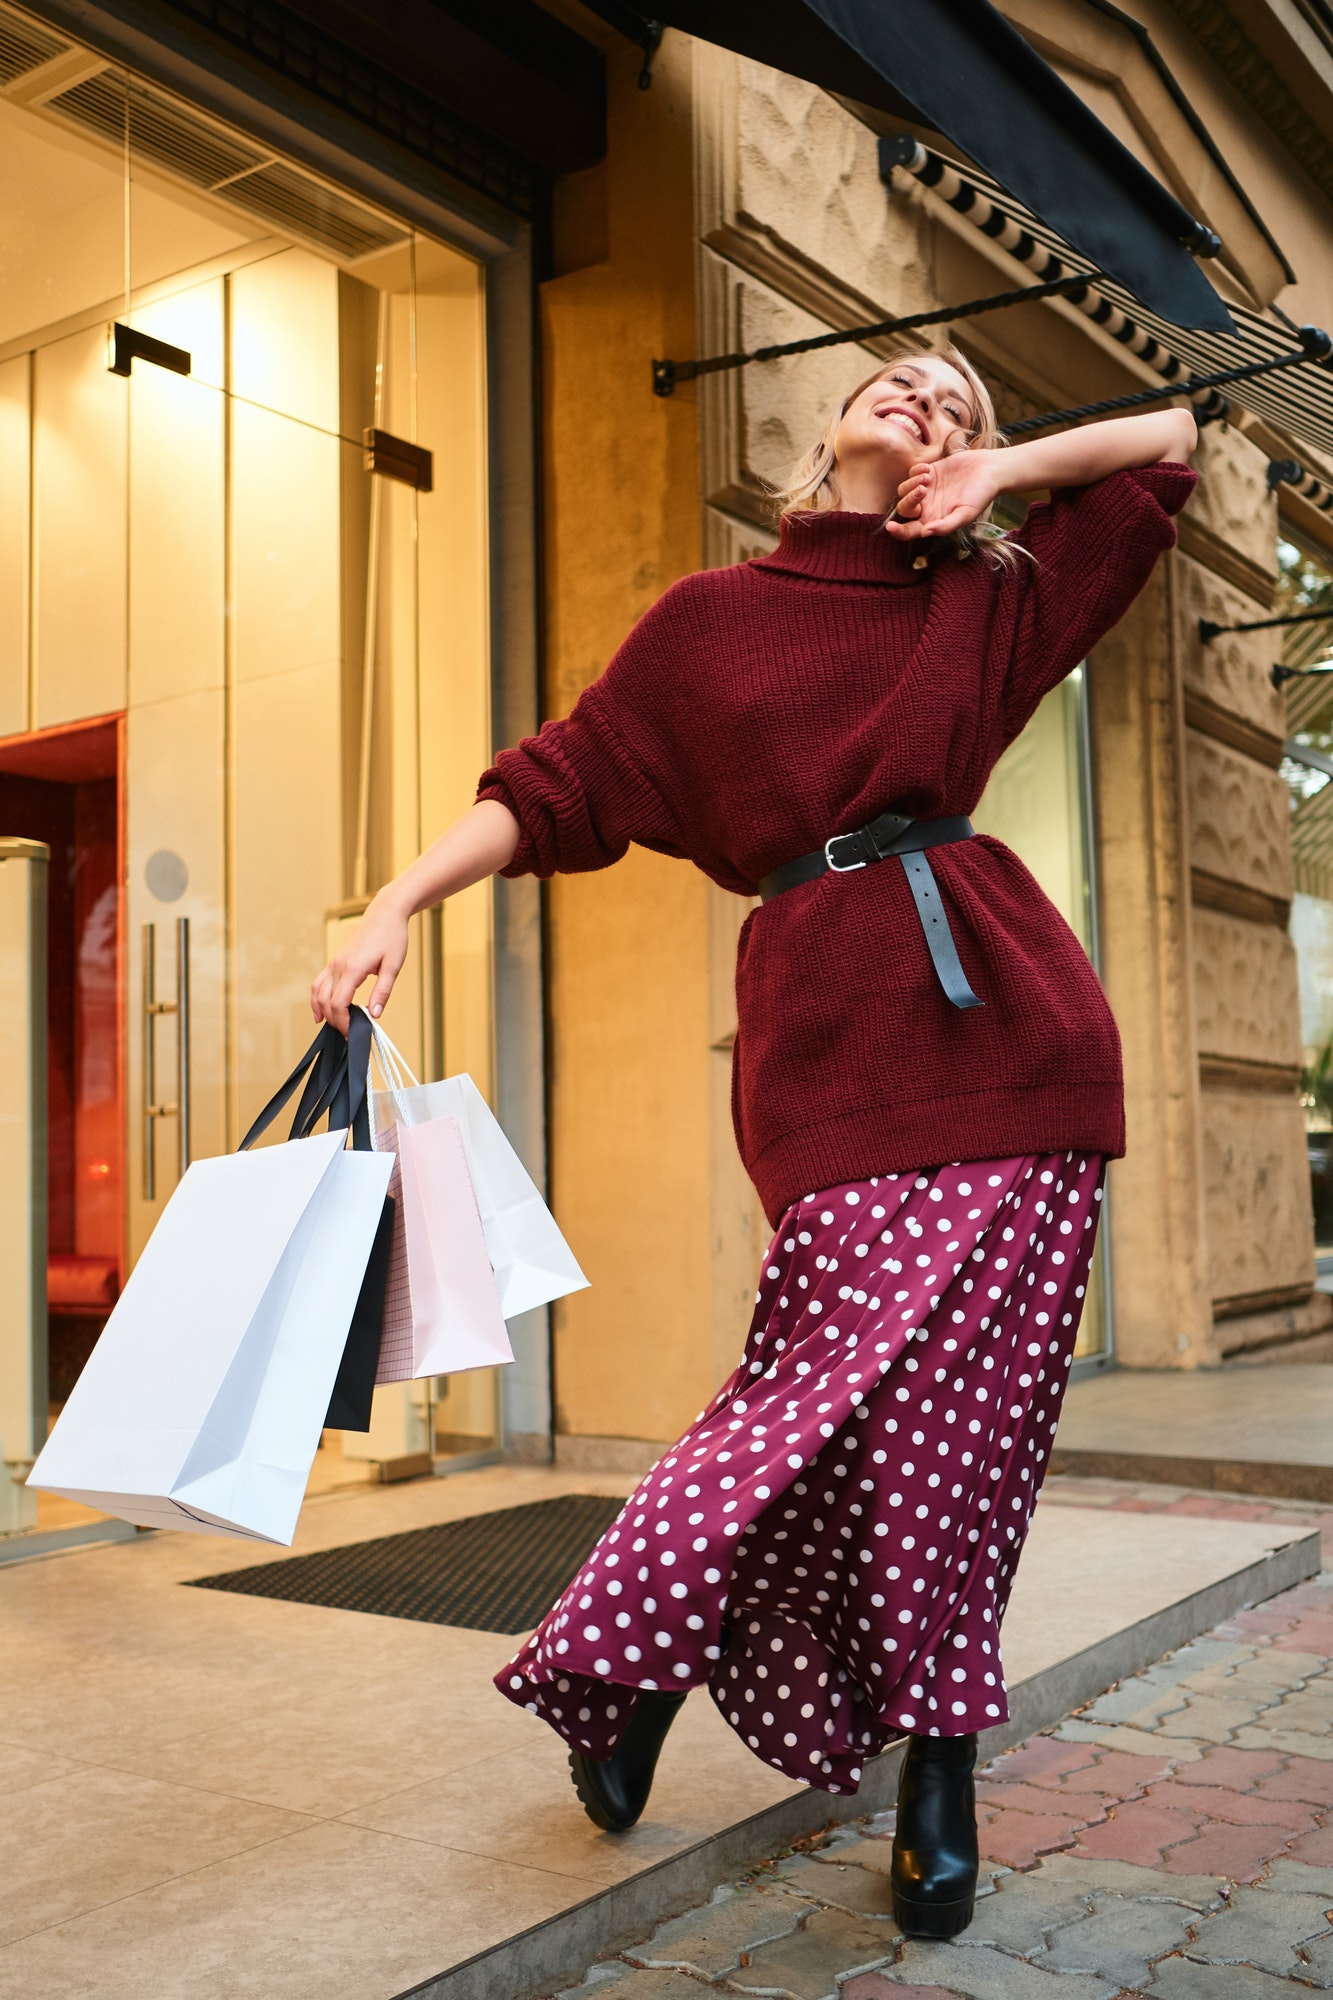 Pretty cheerful stylish blond girl with shopping bags rejoicing after shopping outdoor